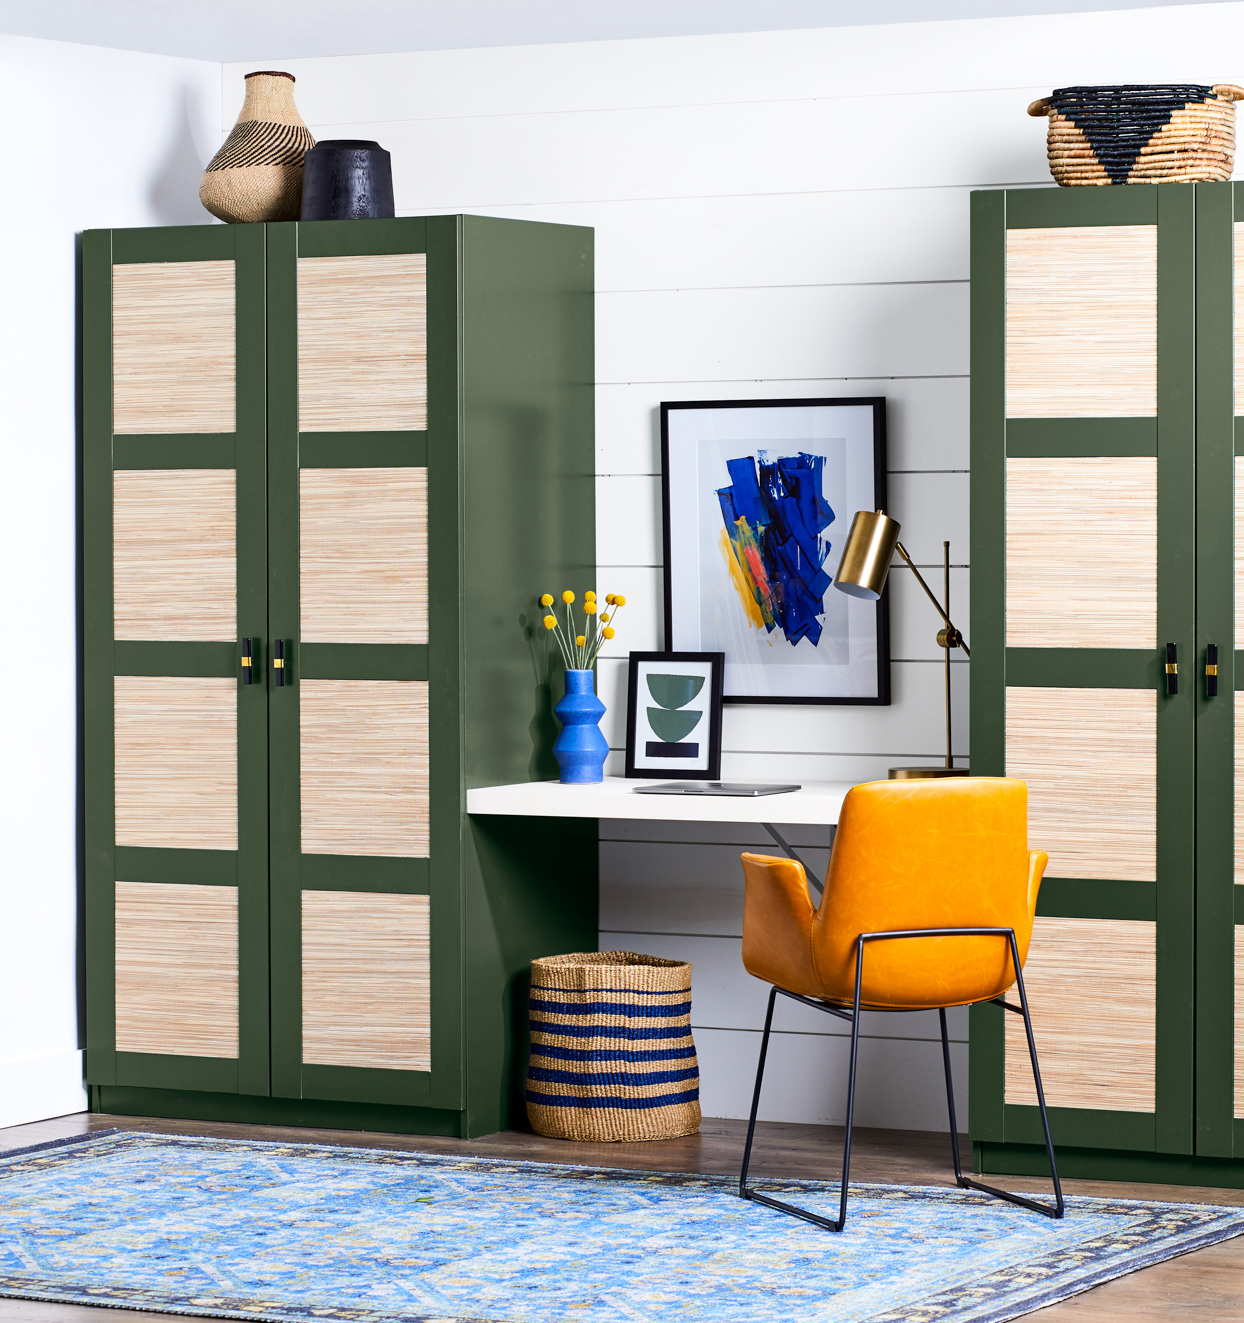 workspace with olive green cabinets